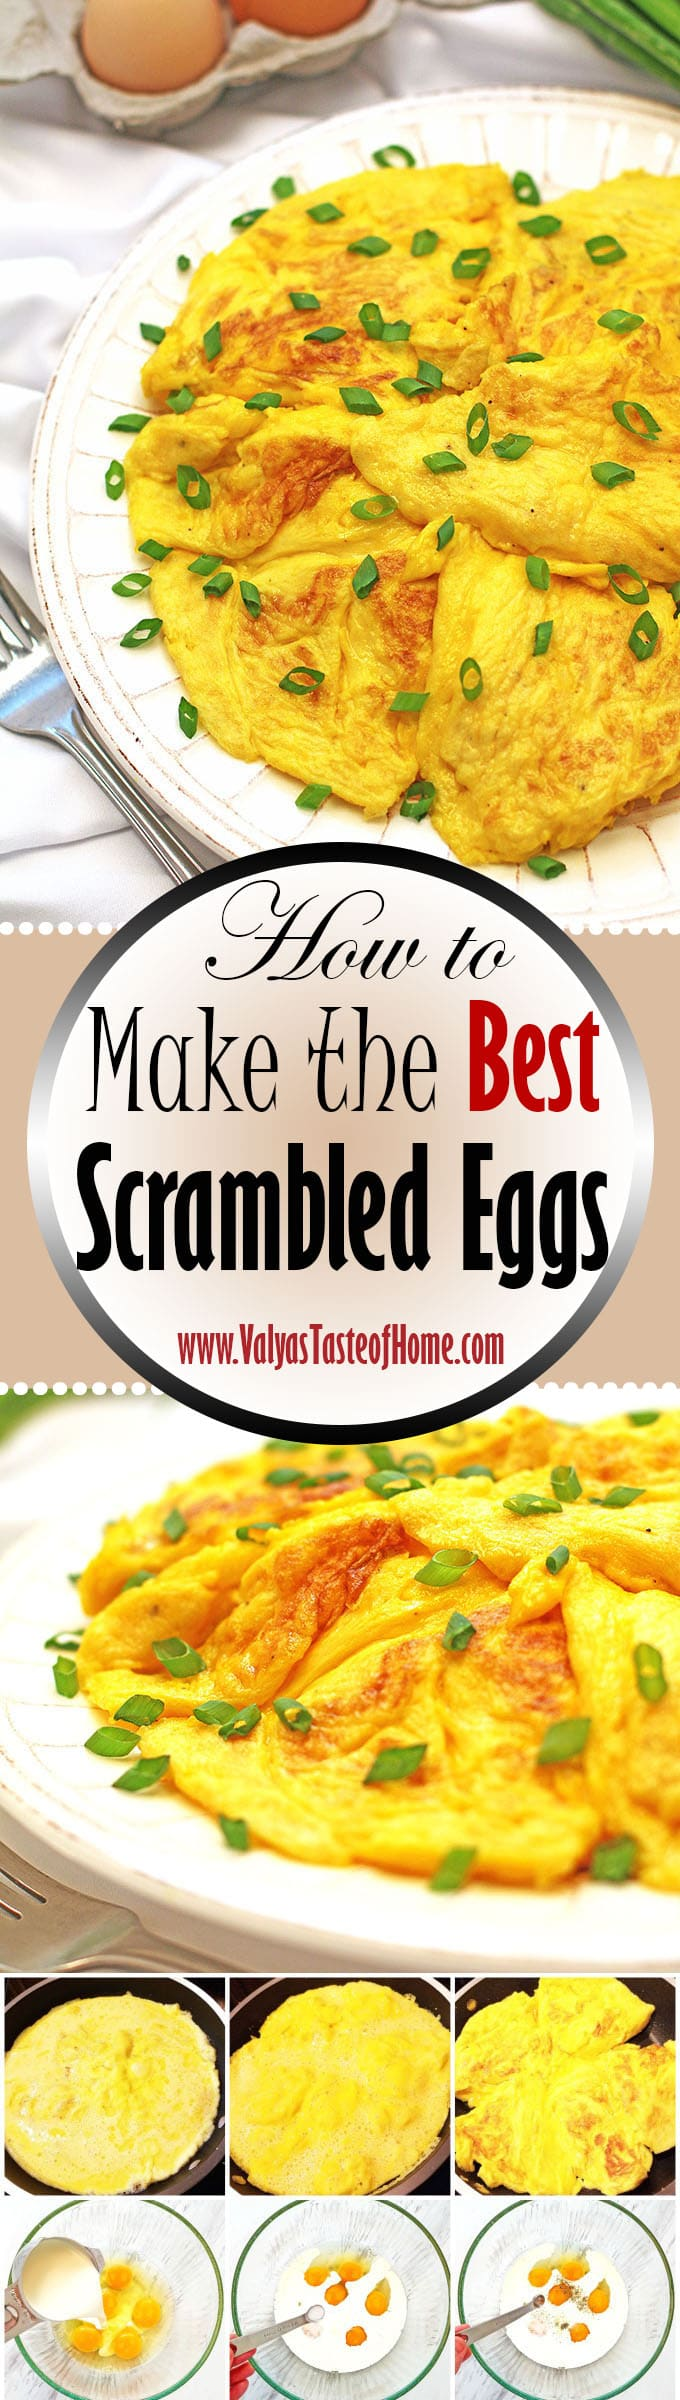 Best Scrambled Eggs Recipe, breakfast treat, comfort food, home eggs, How to Make Scrambled Eggs, perfect scrambled eggs, protein breakfast, recipe, scrambled eggs, so delicious, How to Make the Best Scrambled Eggs Recipe